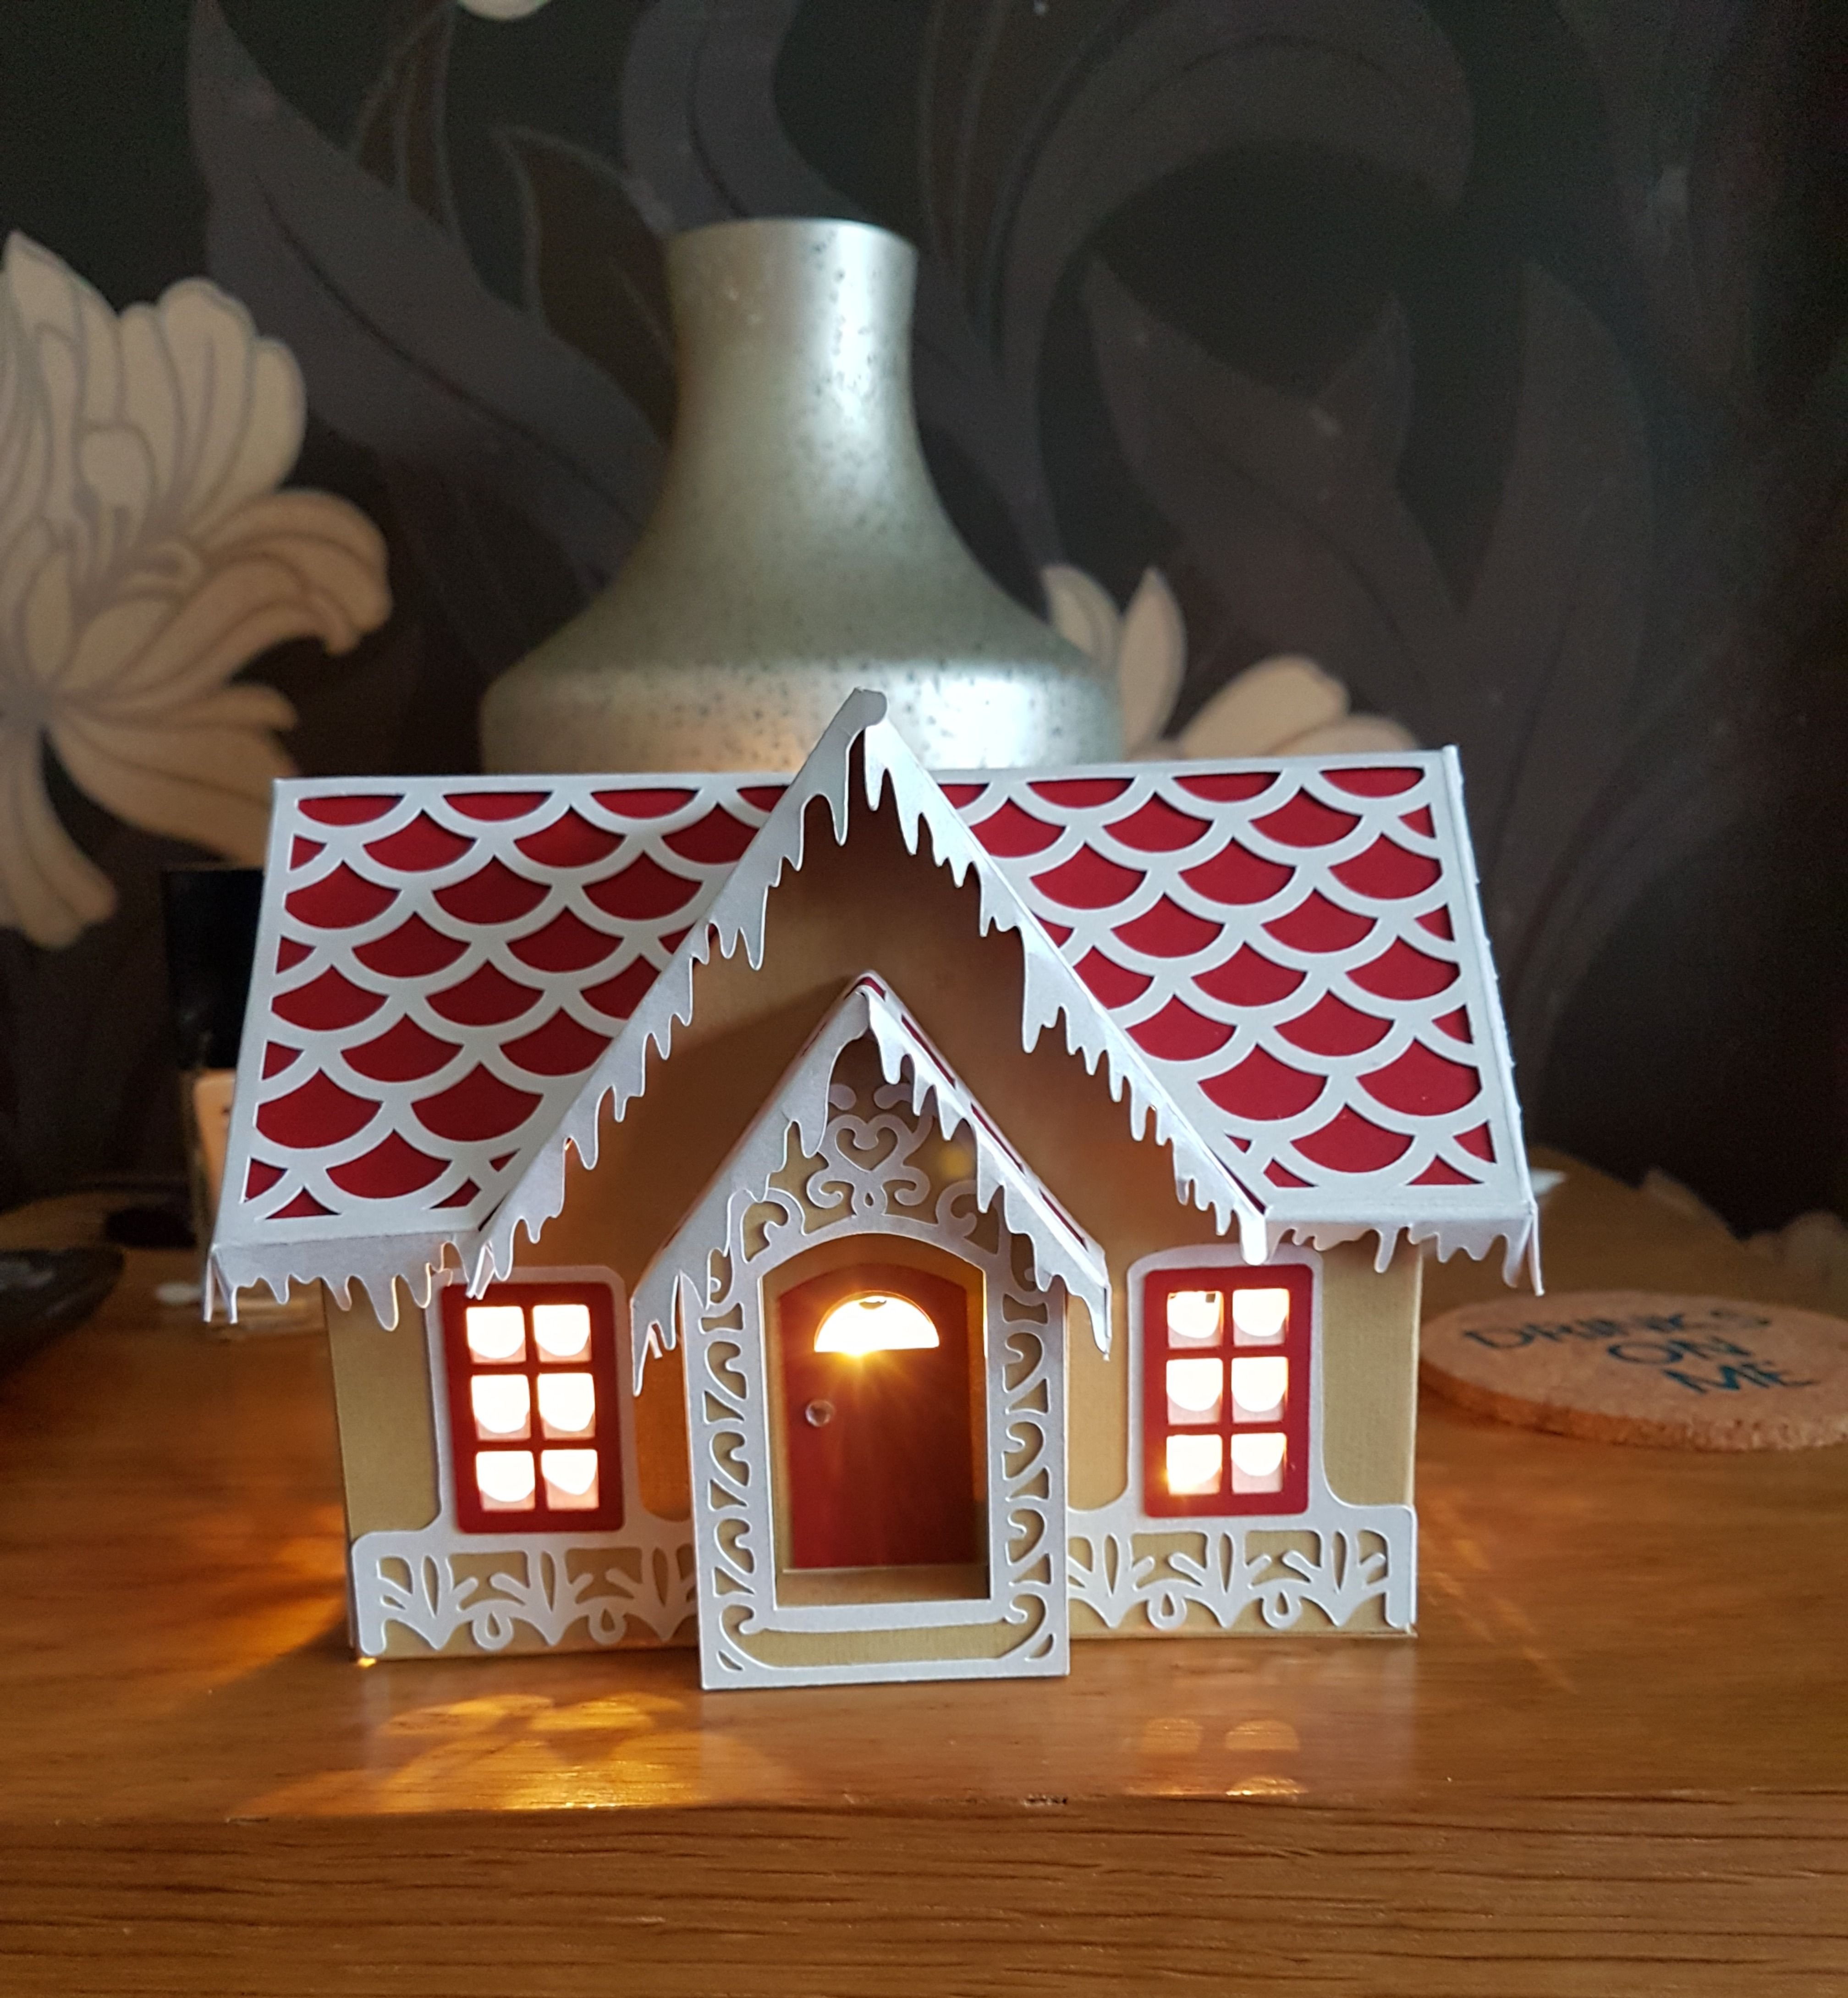 Gingerbread house made with cricut maker and lights added